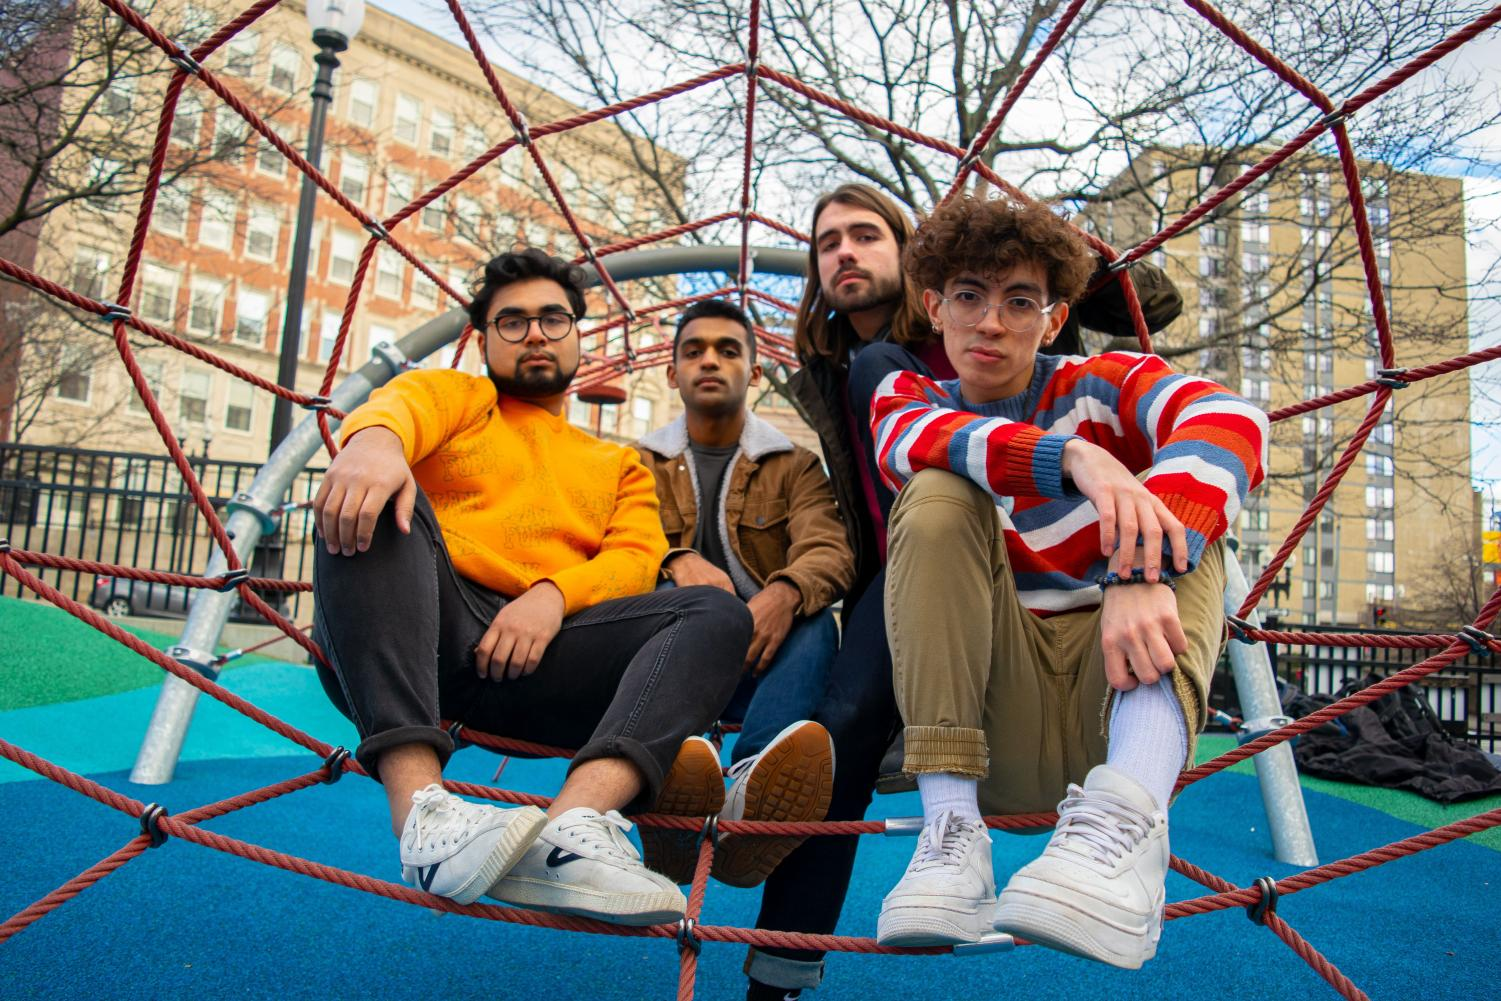 Karthik Ramaswami '22, Amogh Matthews '22, Henry Tyndall '22, and Thomas Chadwick '22 plan to release first music video and new single for their band Sunsetta this January.